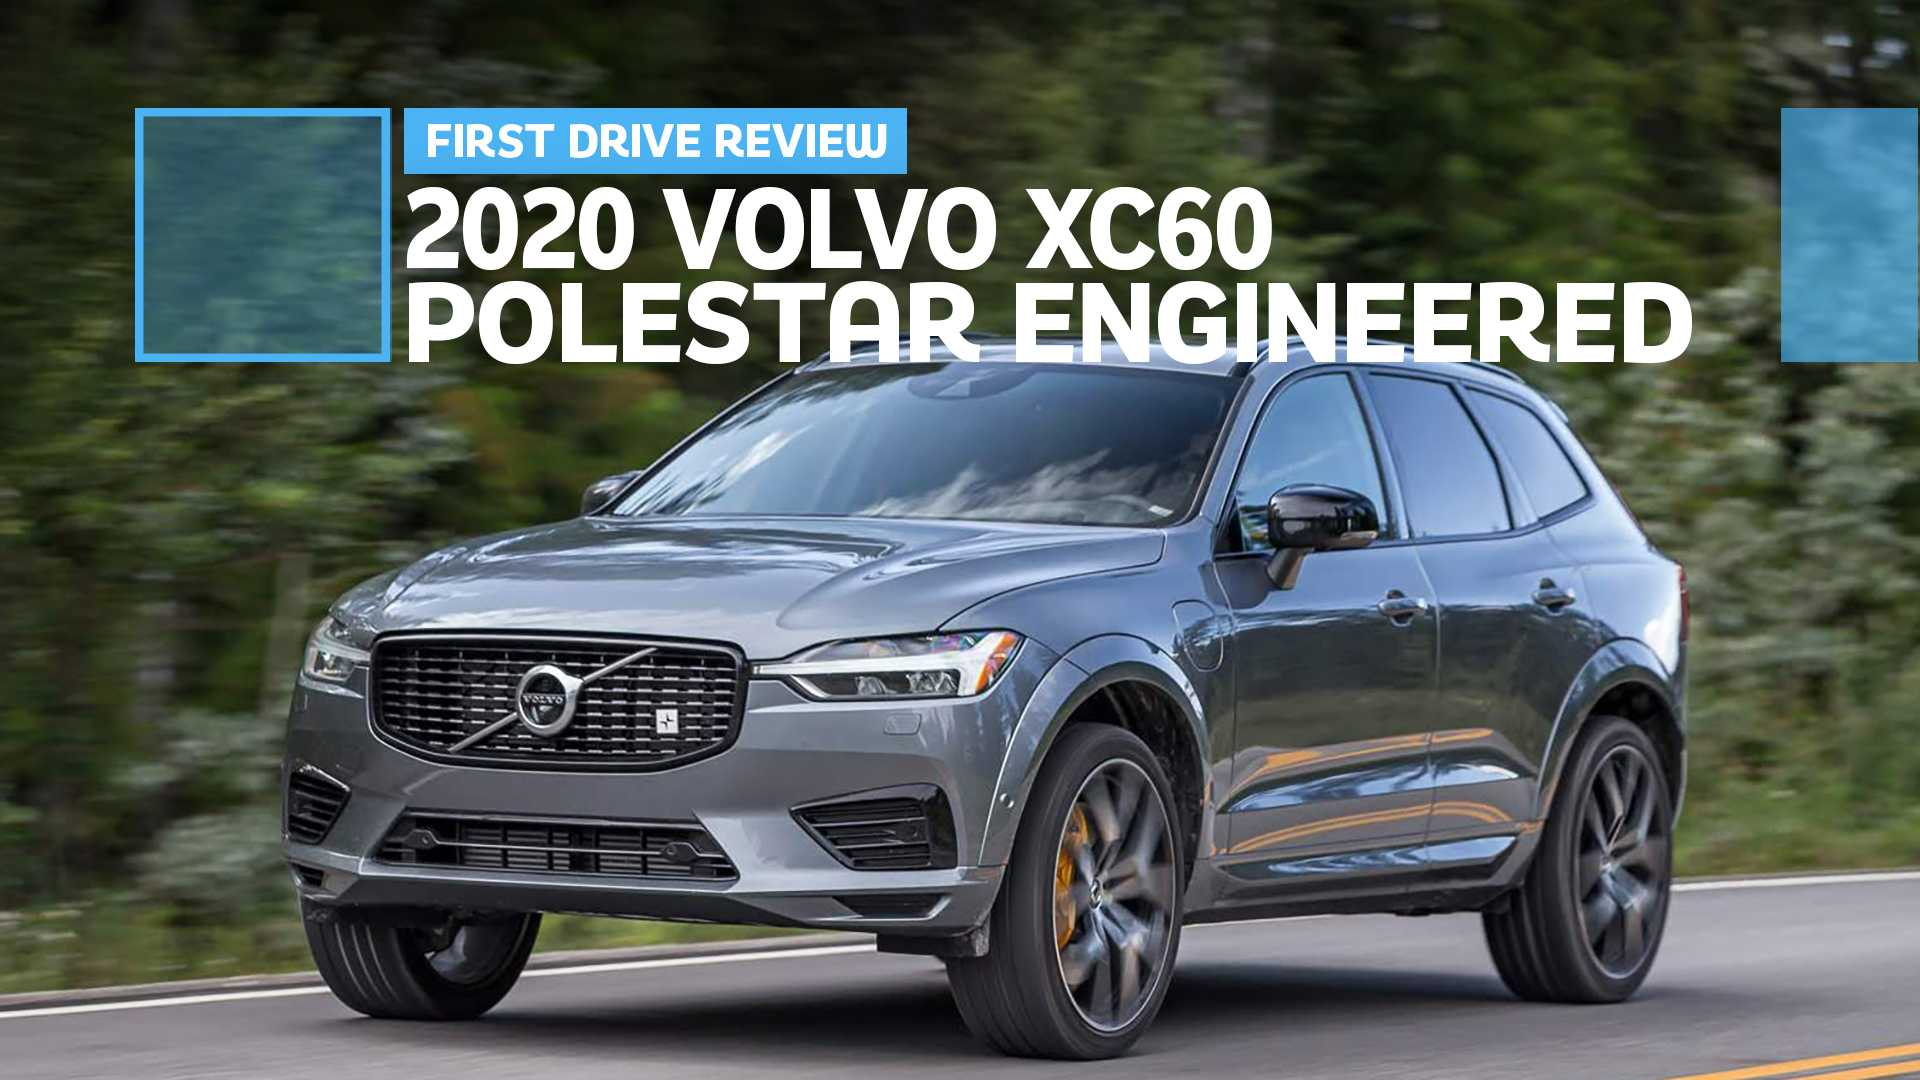 2020 Xc60 Review.2020 Volvo Xc60 Polestar Engineered First Drive Swede Emotion